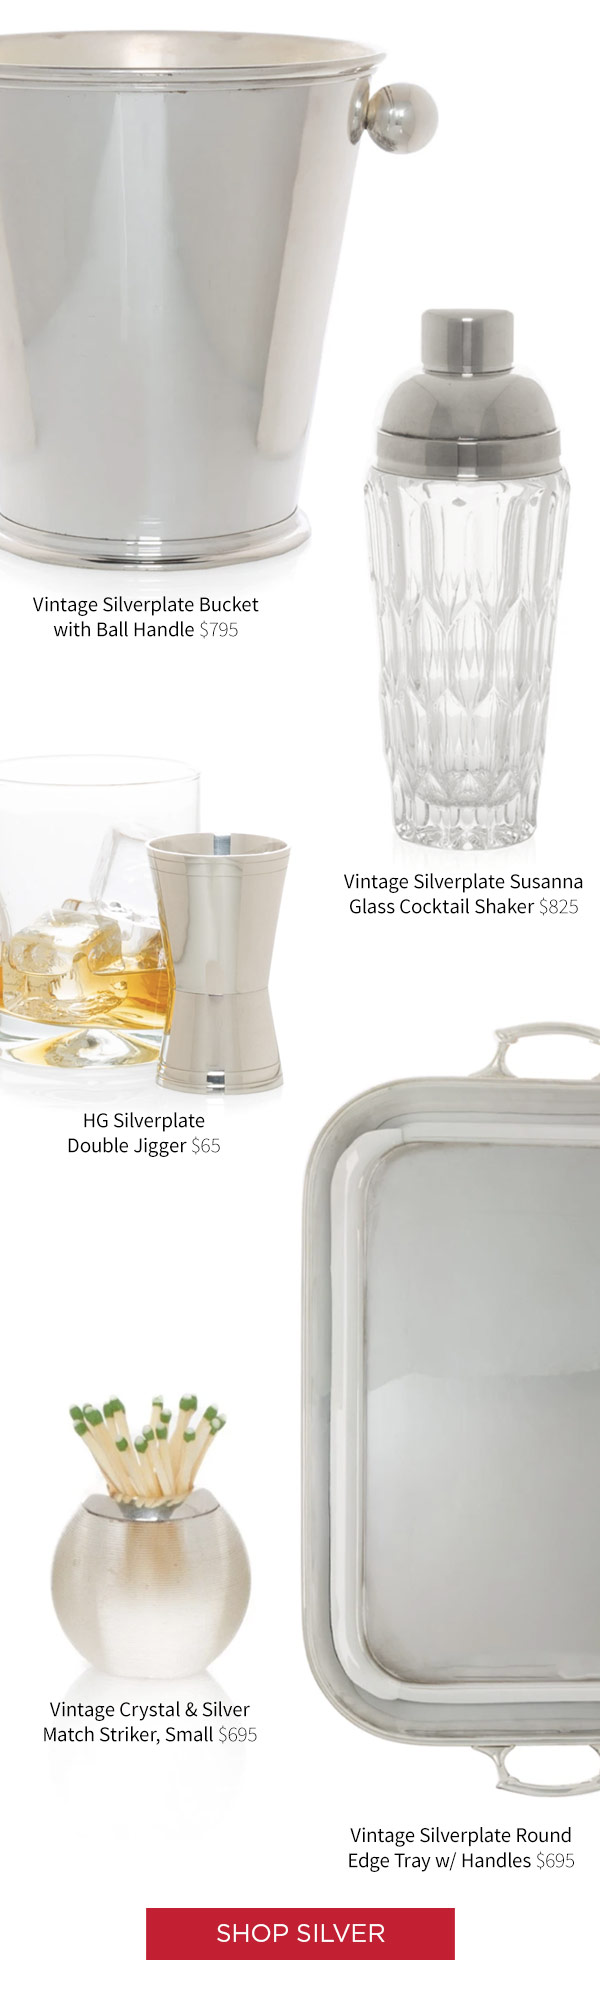 Vintage Silverplate Bucket with Ball Handle - $795 .?Vintage Silverplate Susanna Glass Cocktail Shaker $825 .?HG Silverplate Double Jigger . Vintage Crystal and Silver Match Stricker, Small $695 . Vintage Silverplate Round Edge Tray with Handles $695.